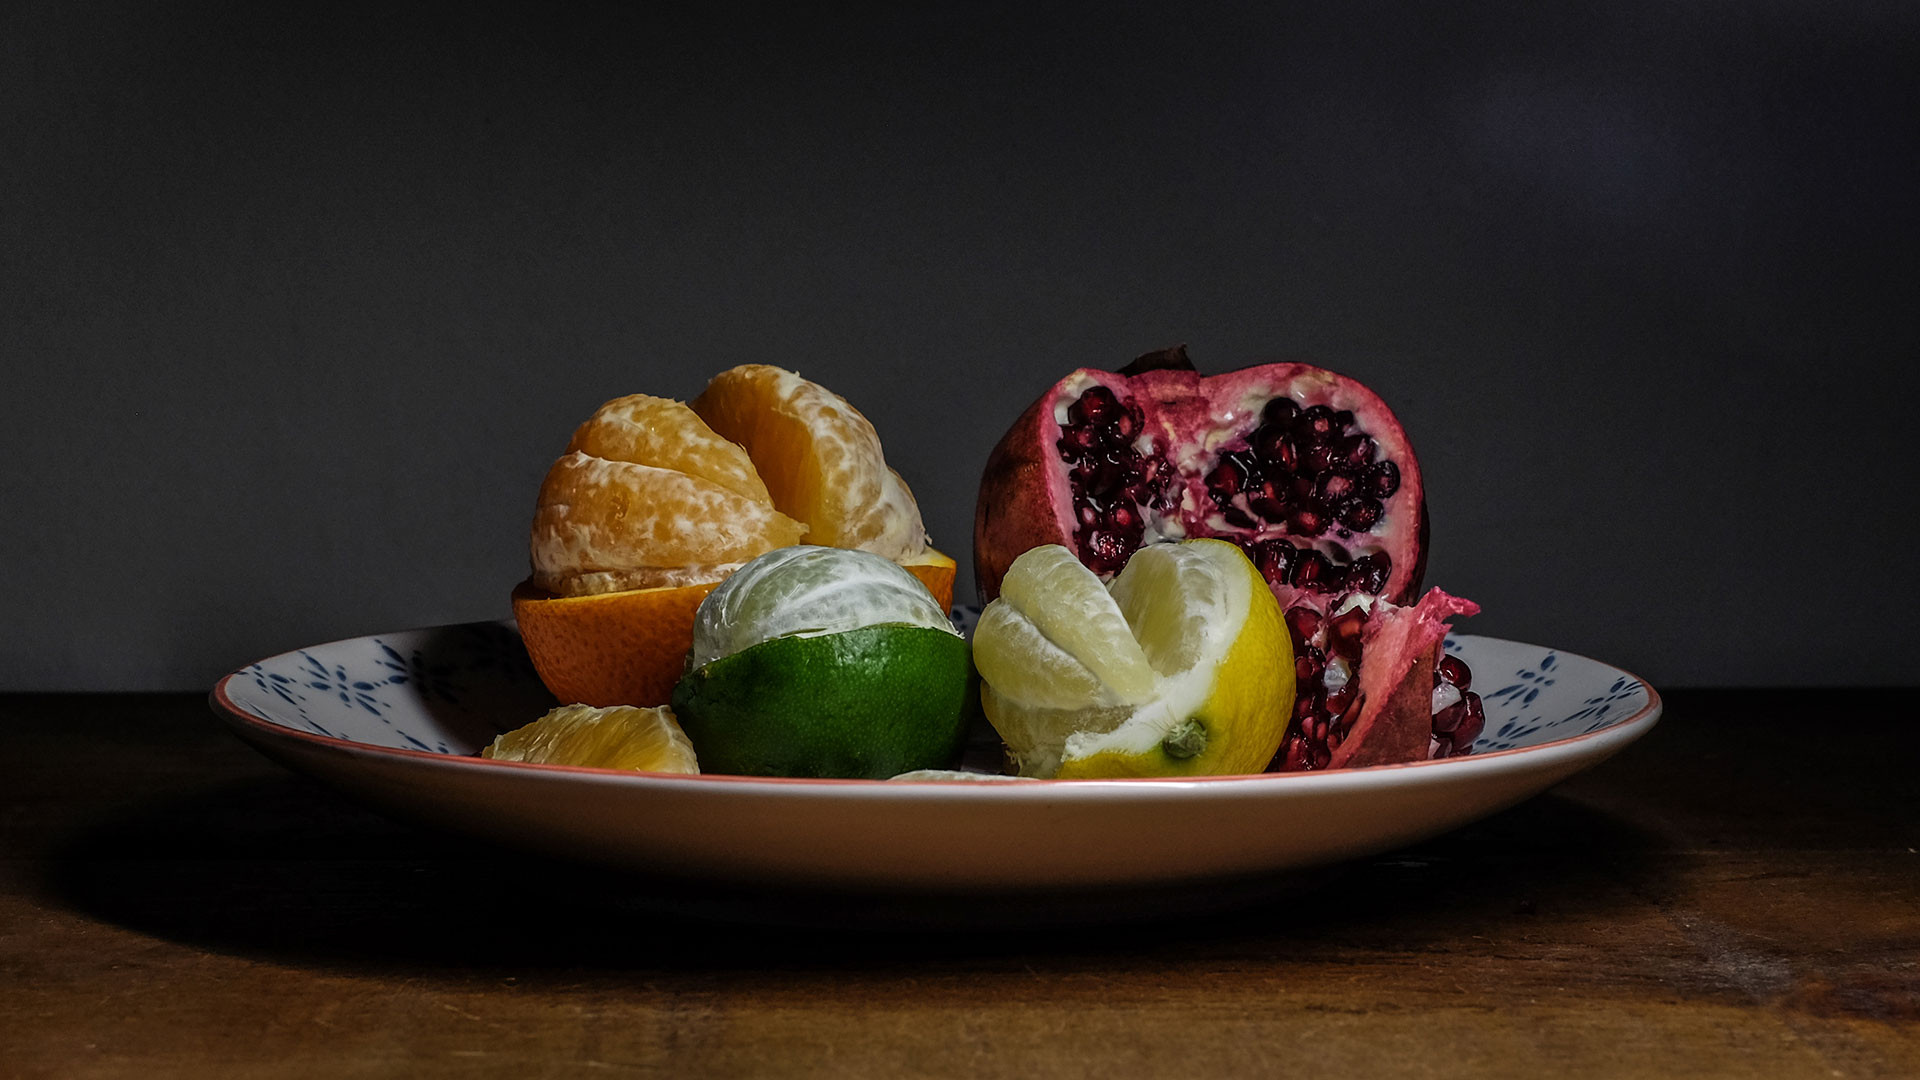 Pink Lady Food Photographer of the Year, 15-17 winner, Emma Franklin, The Beauty of Fruit